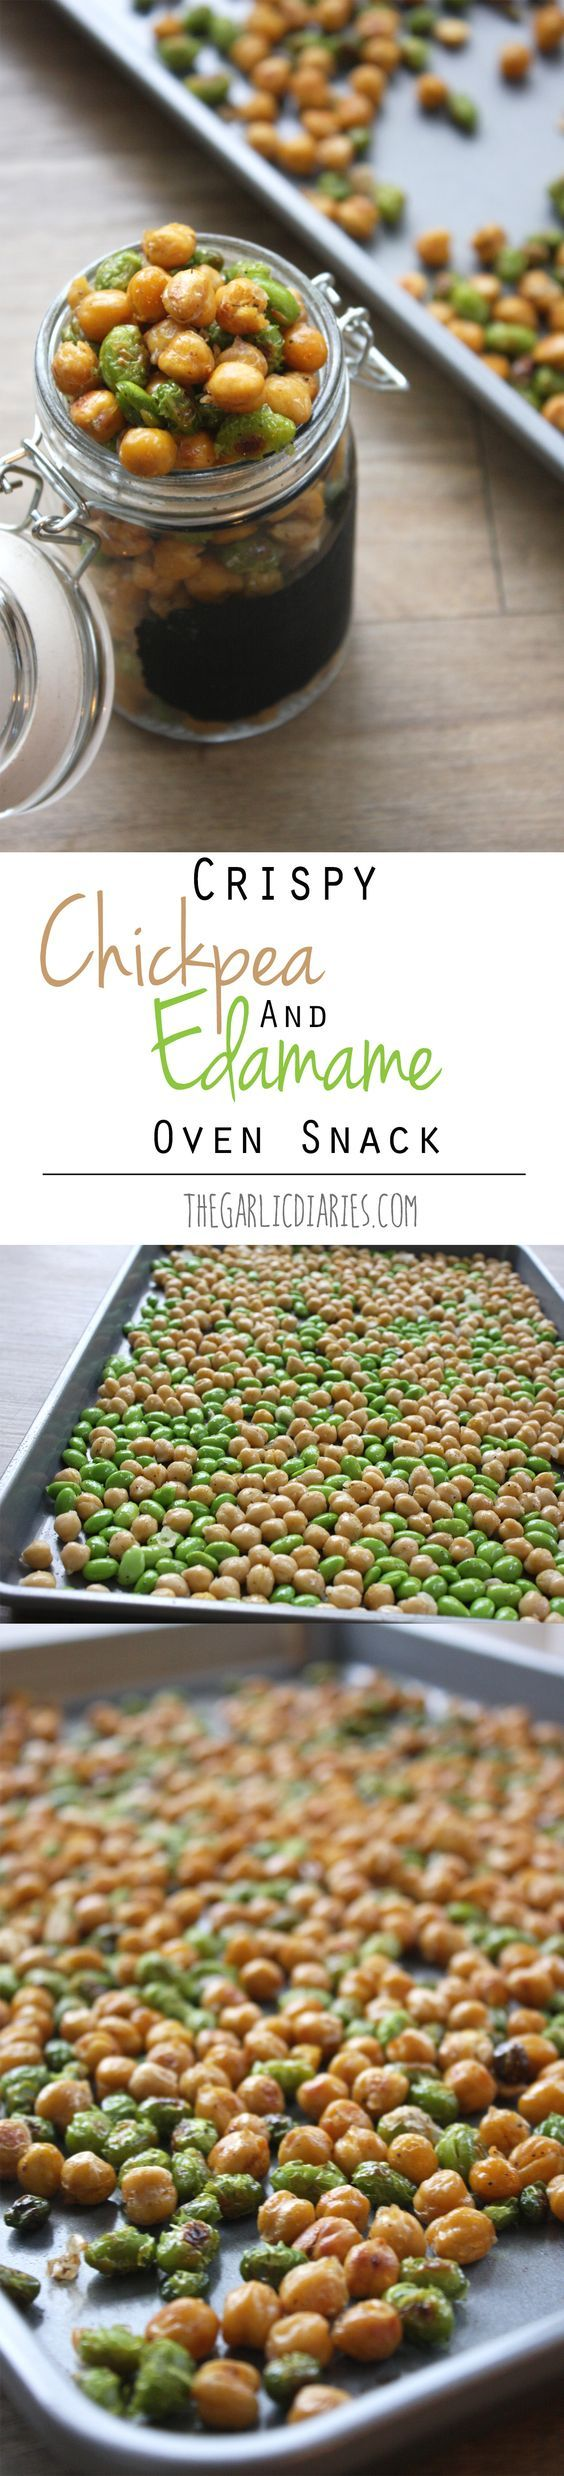 Crispy Chickpea and Edamame Oven Snack TheGarlicDiaries.com                                                                                                                            More